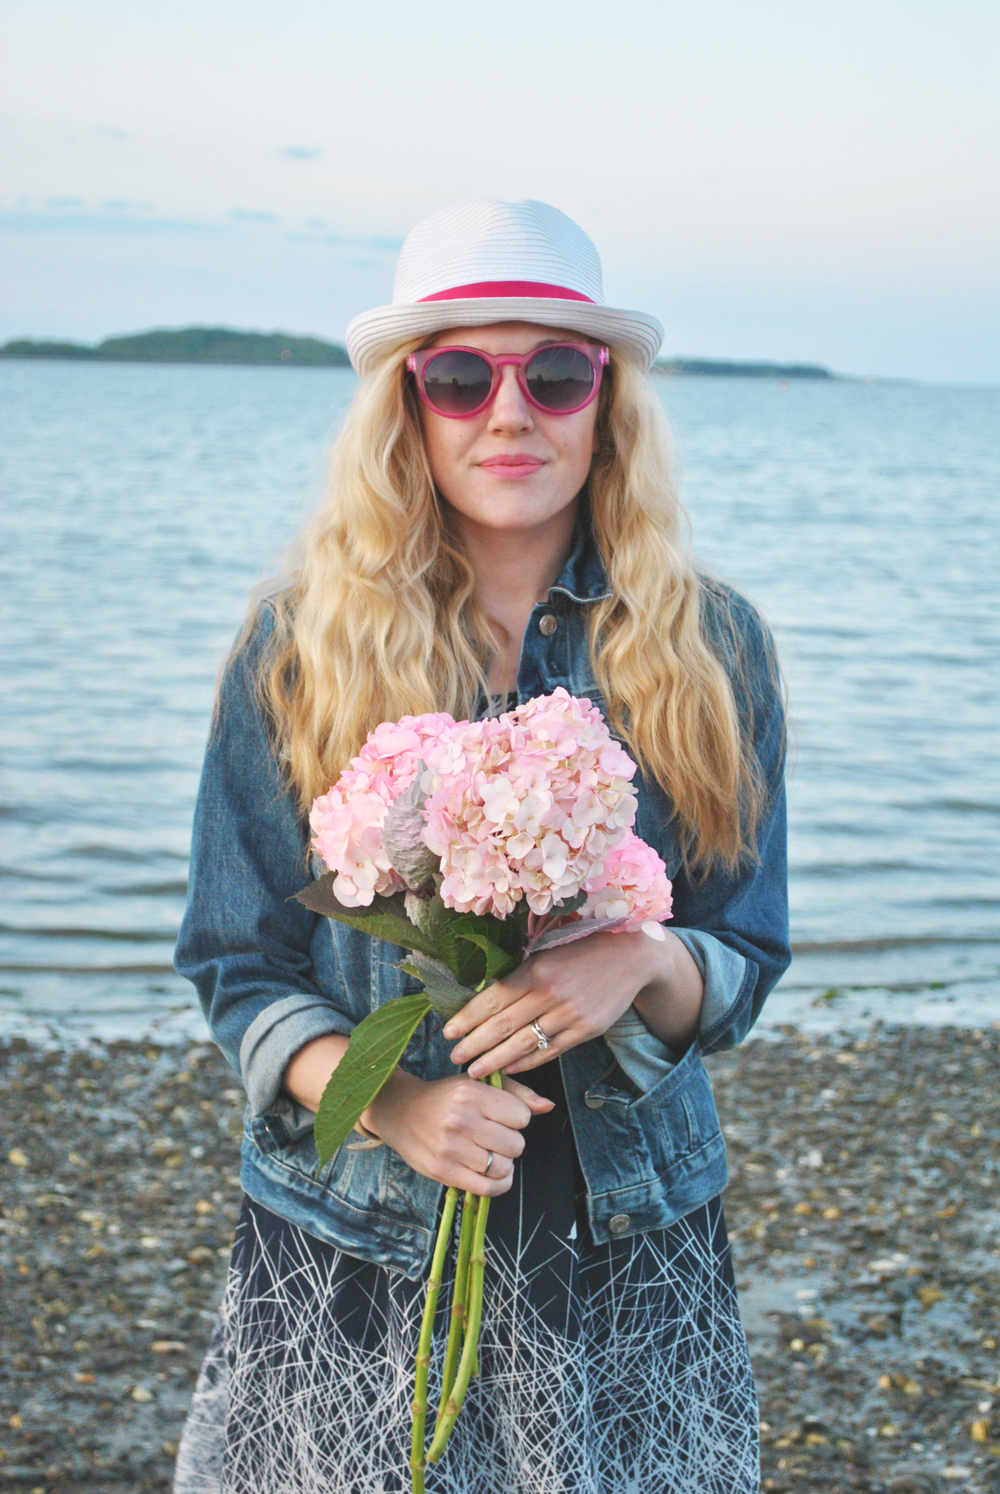 thoughtfulwish | flower child // boston // beach life // boston // boston blogger // preppy outfit // nautical // fashion // fashion blogger // ootd // meredith wish